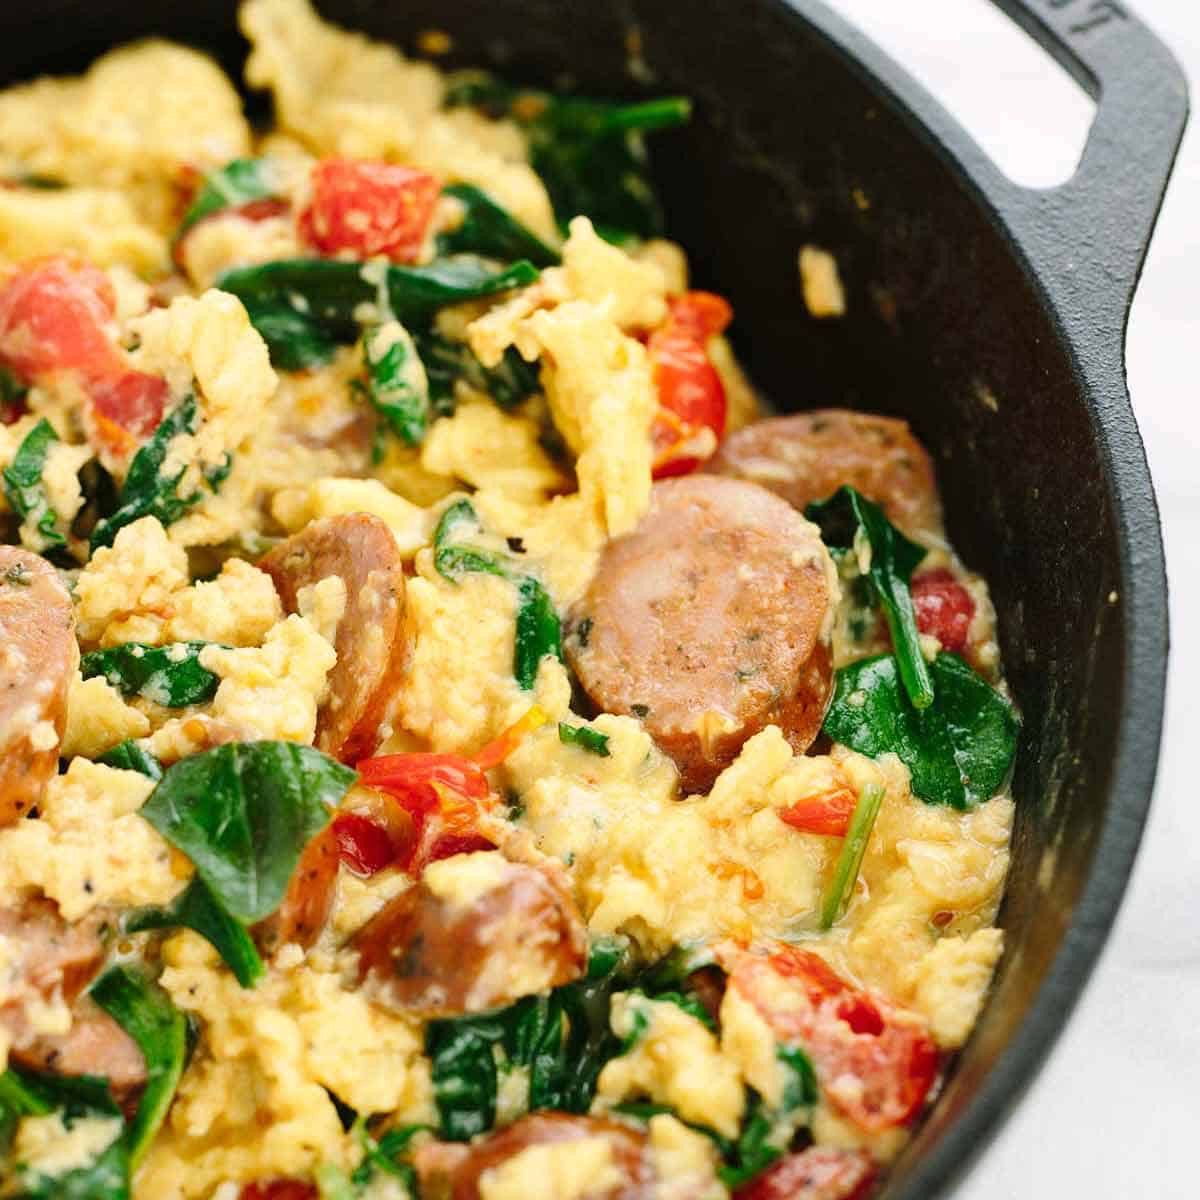 Healthy Breakfast Scramble  Breakfast Scramble Recipe with Italian Sausage Jessica Gavin